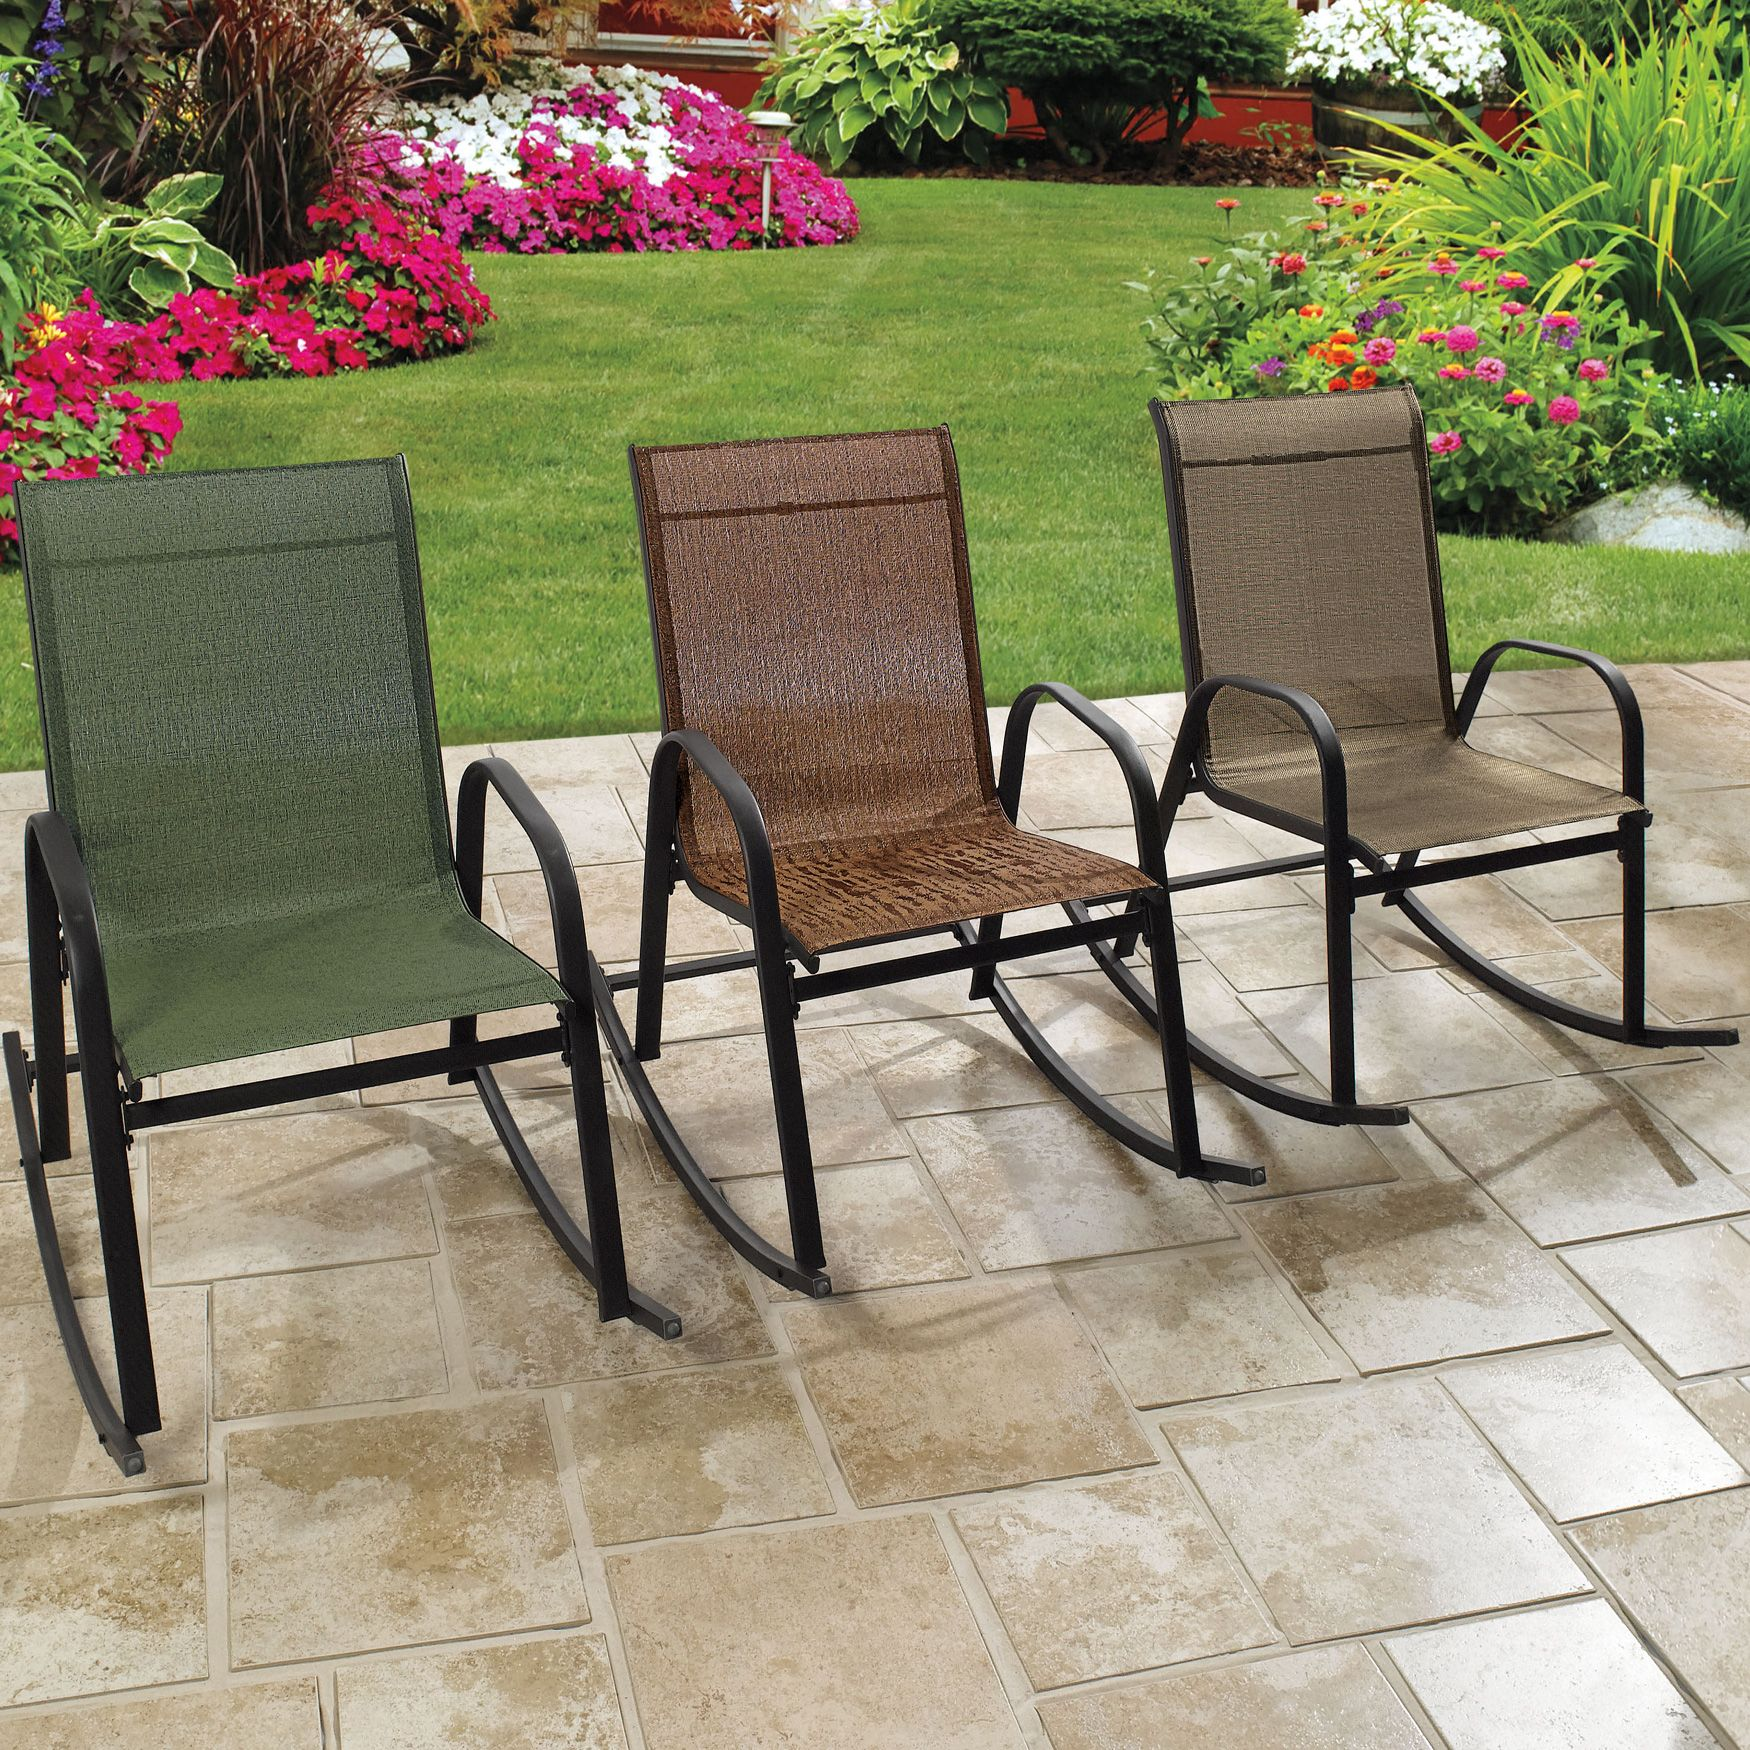 Extra wide outdoor rocking chair patio furniture